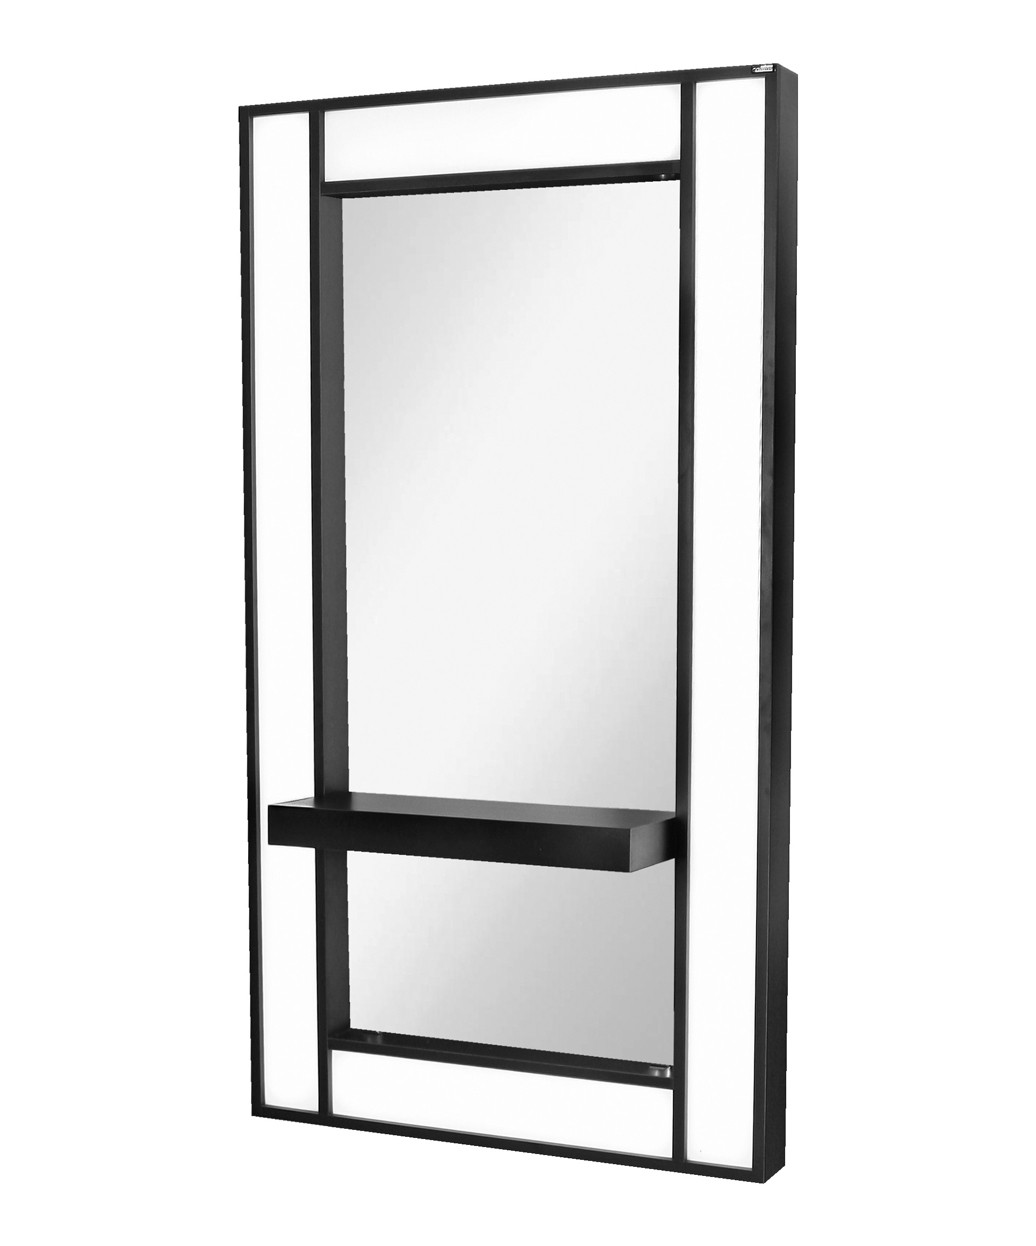 Collins 6671 Lox Wall-Mounted Mirror w/ Ledge & LED Lights